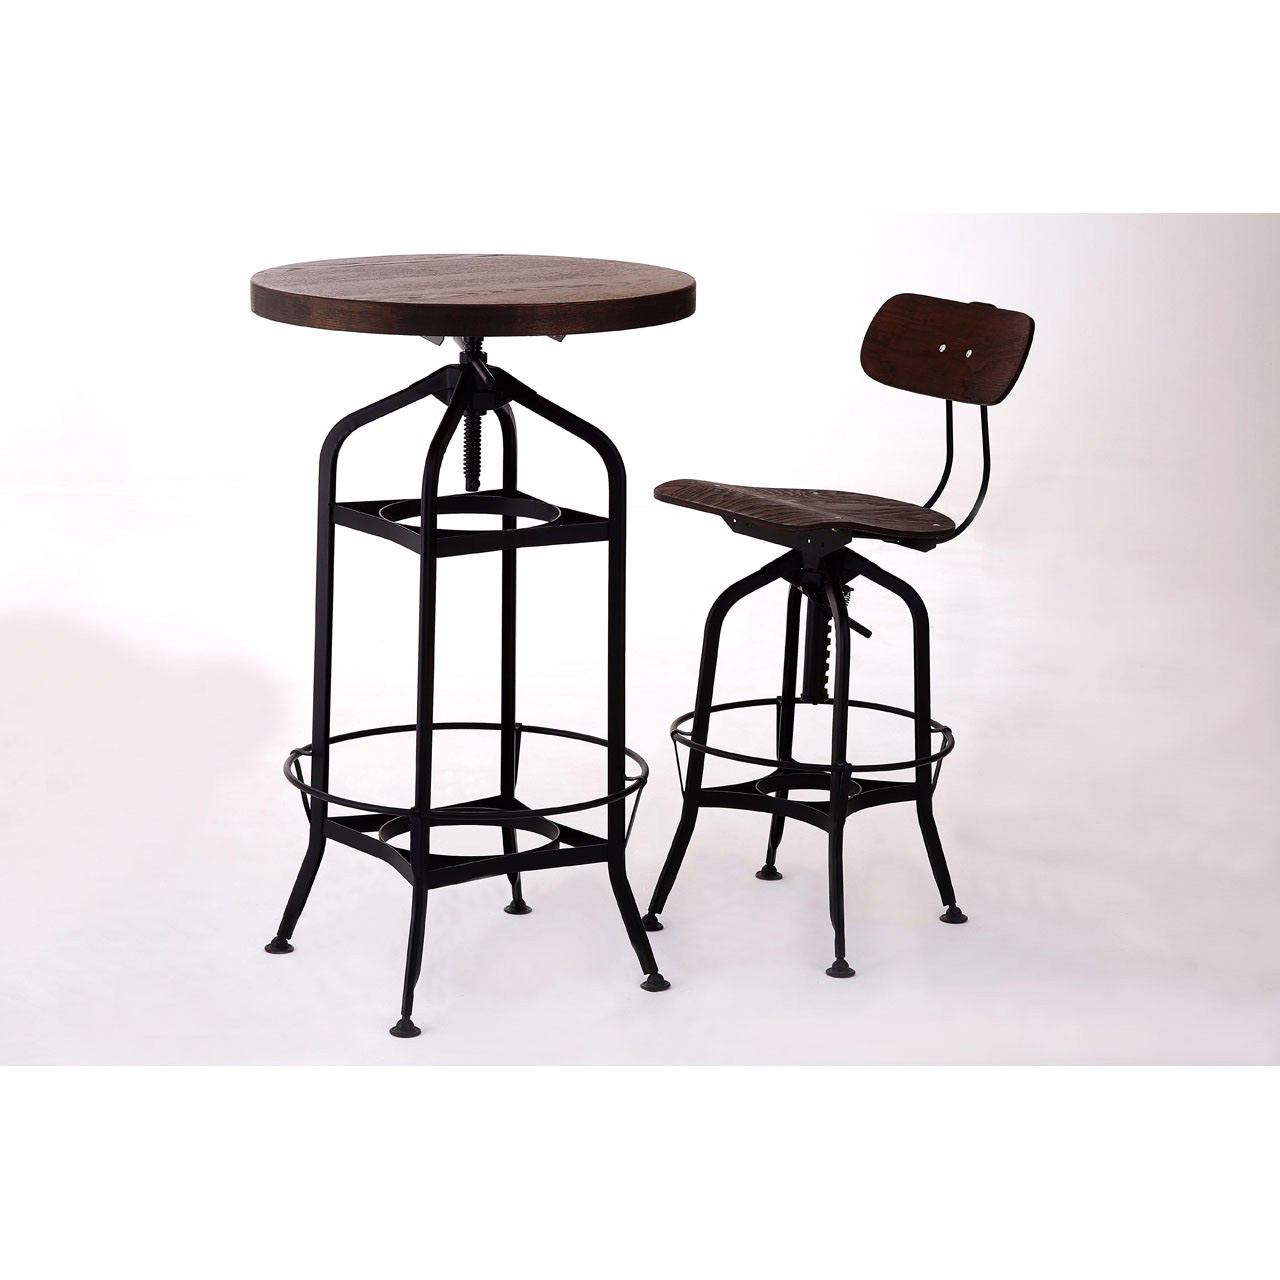 Foundry Machinist stool at FADS.co.uk